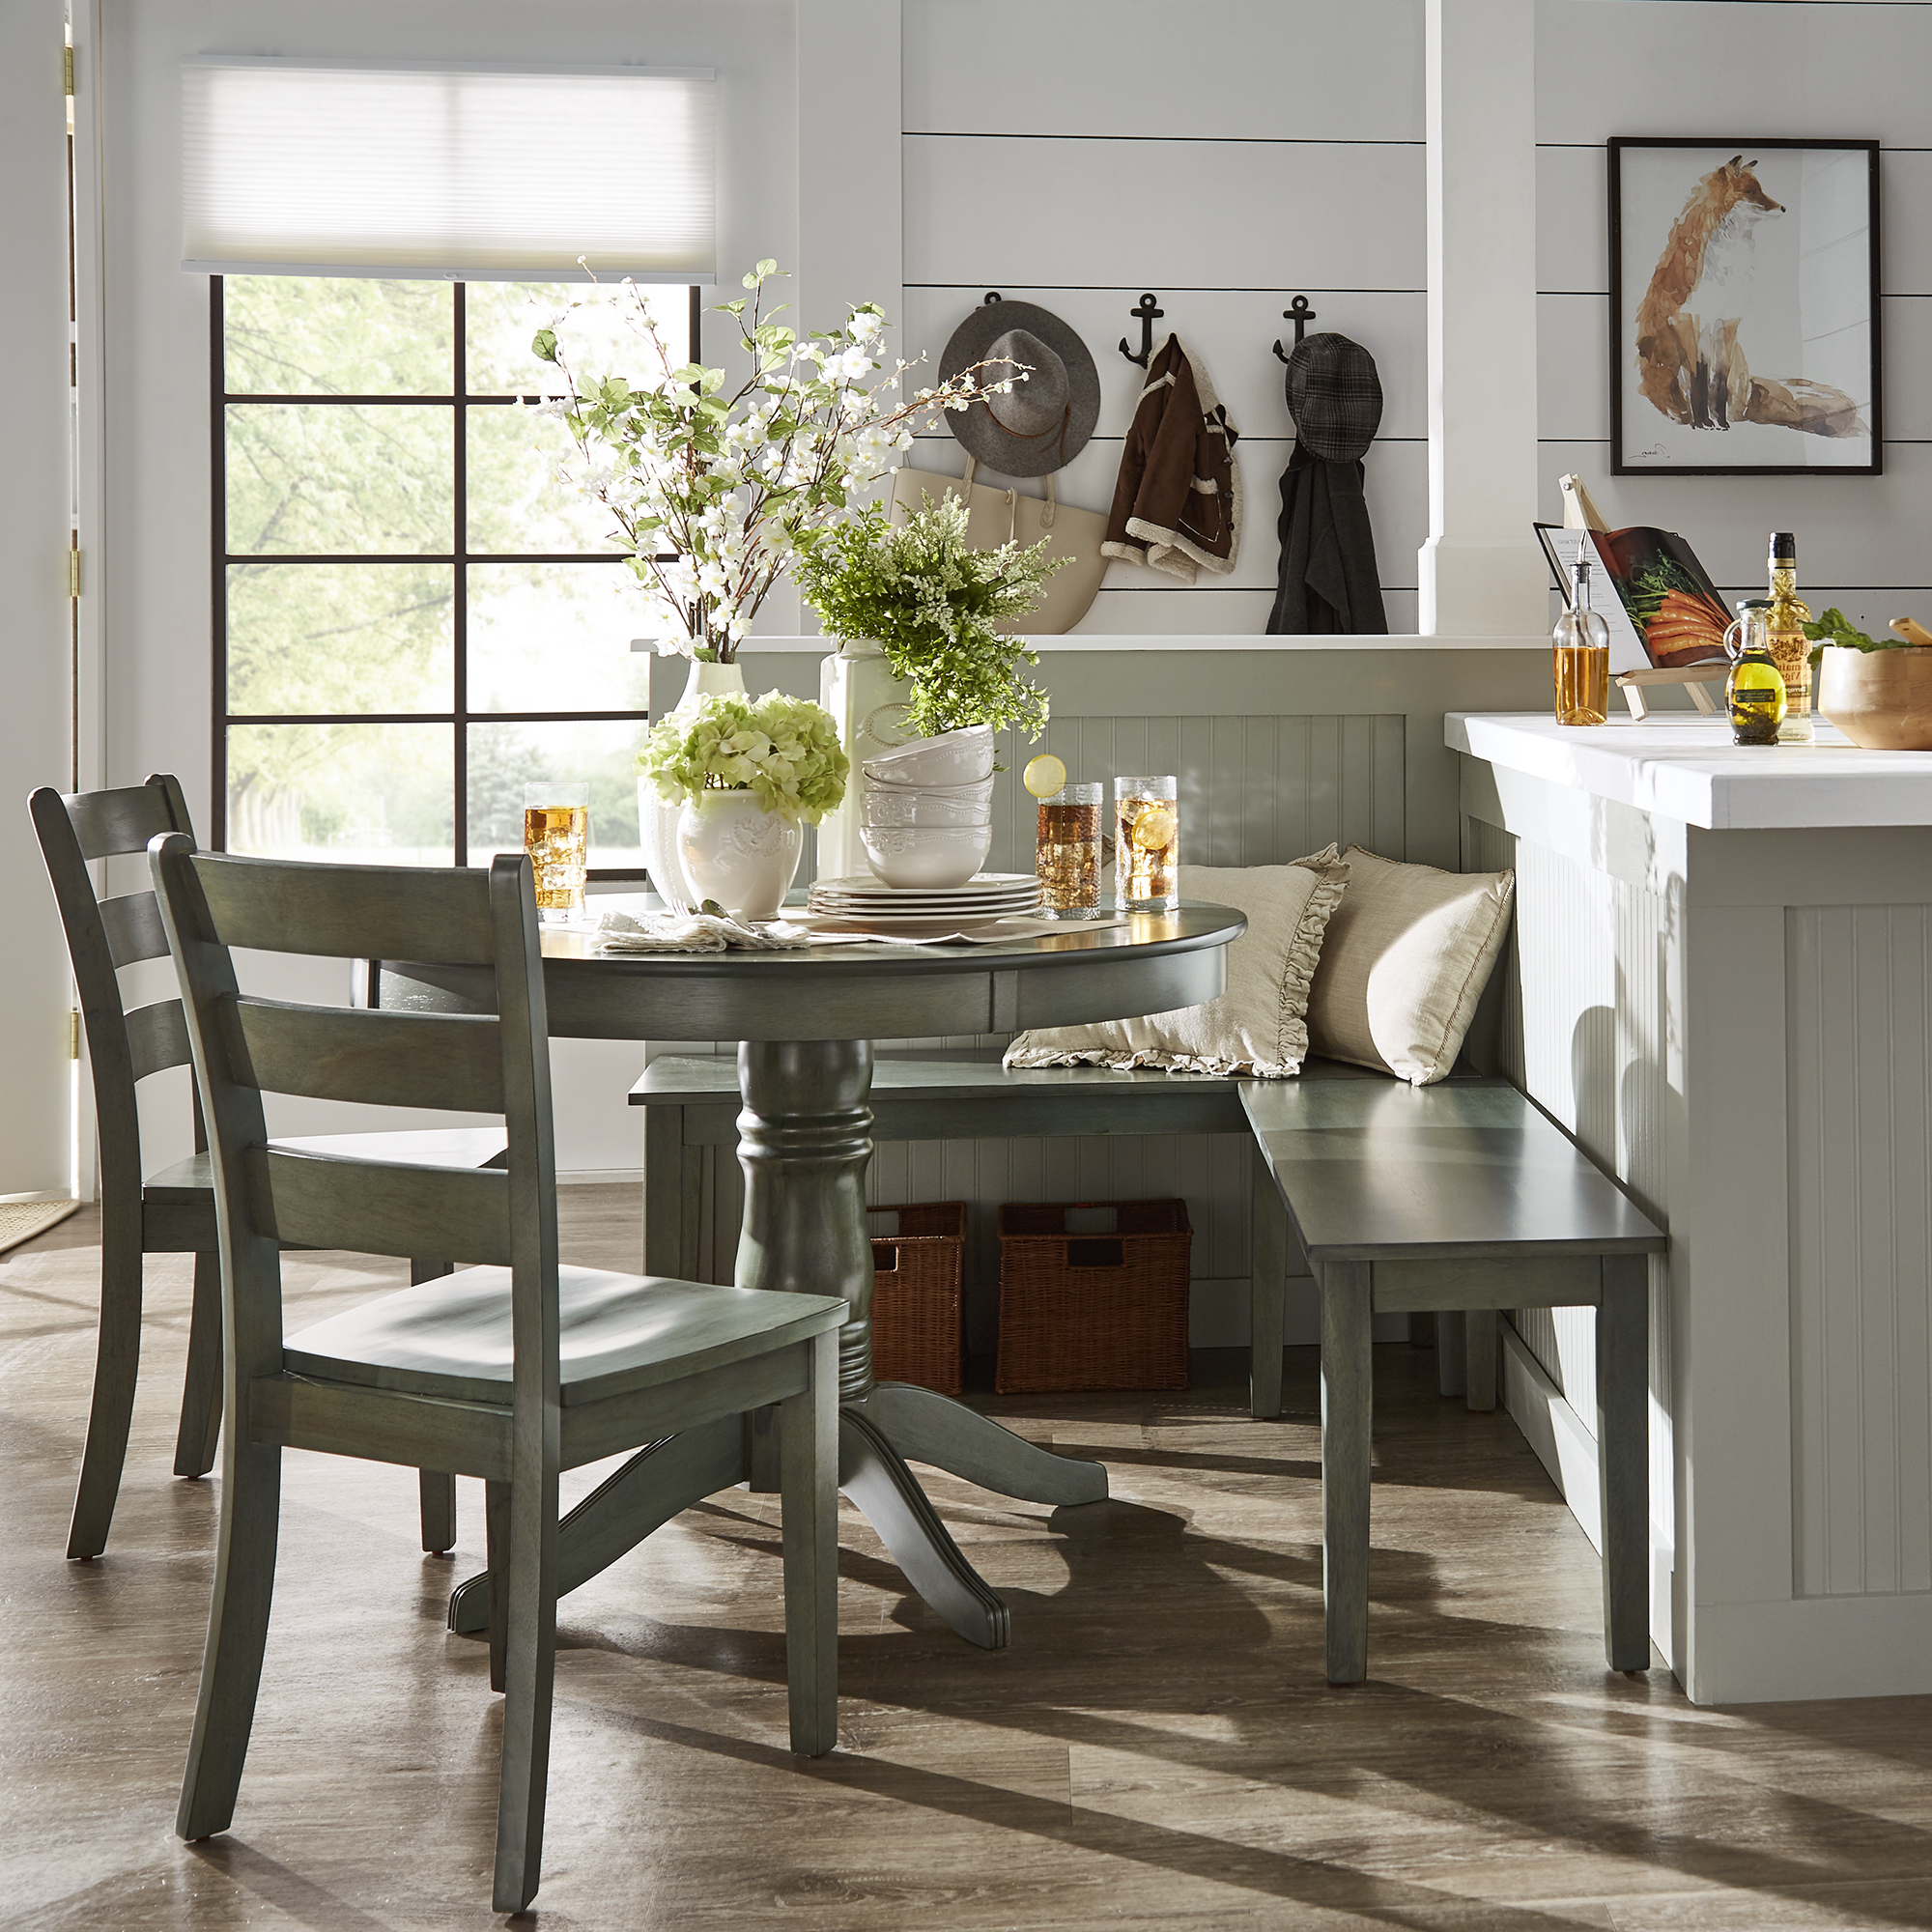 Weston Home Lexington 5 Piece Breakfast Nook Dining Set, Round Table With Regard To Well Known 5 Piece Breakfast Nook Dining Sets (View 25 of 25)